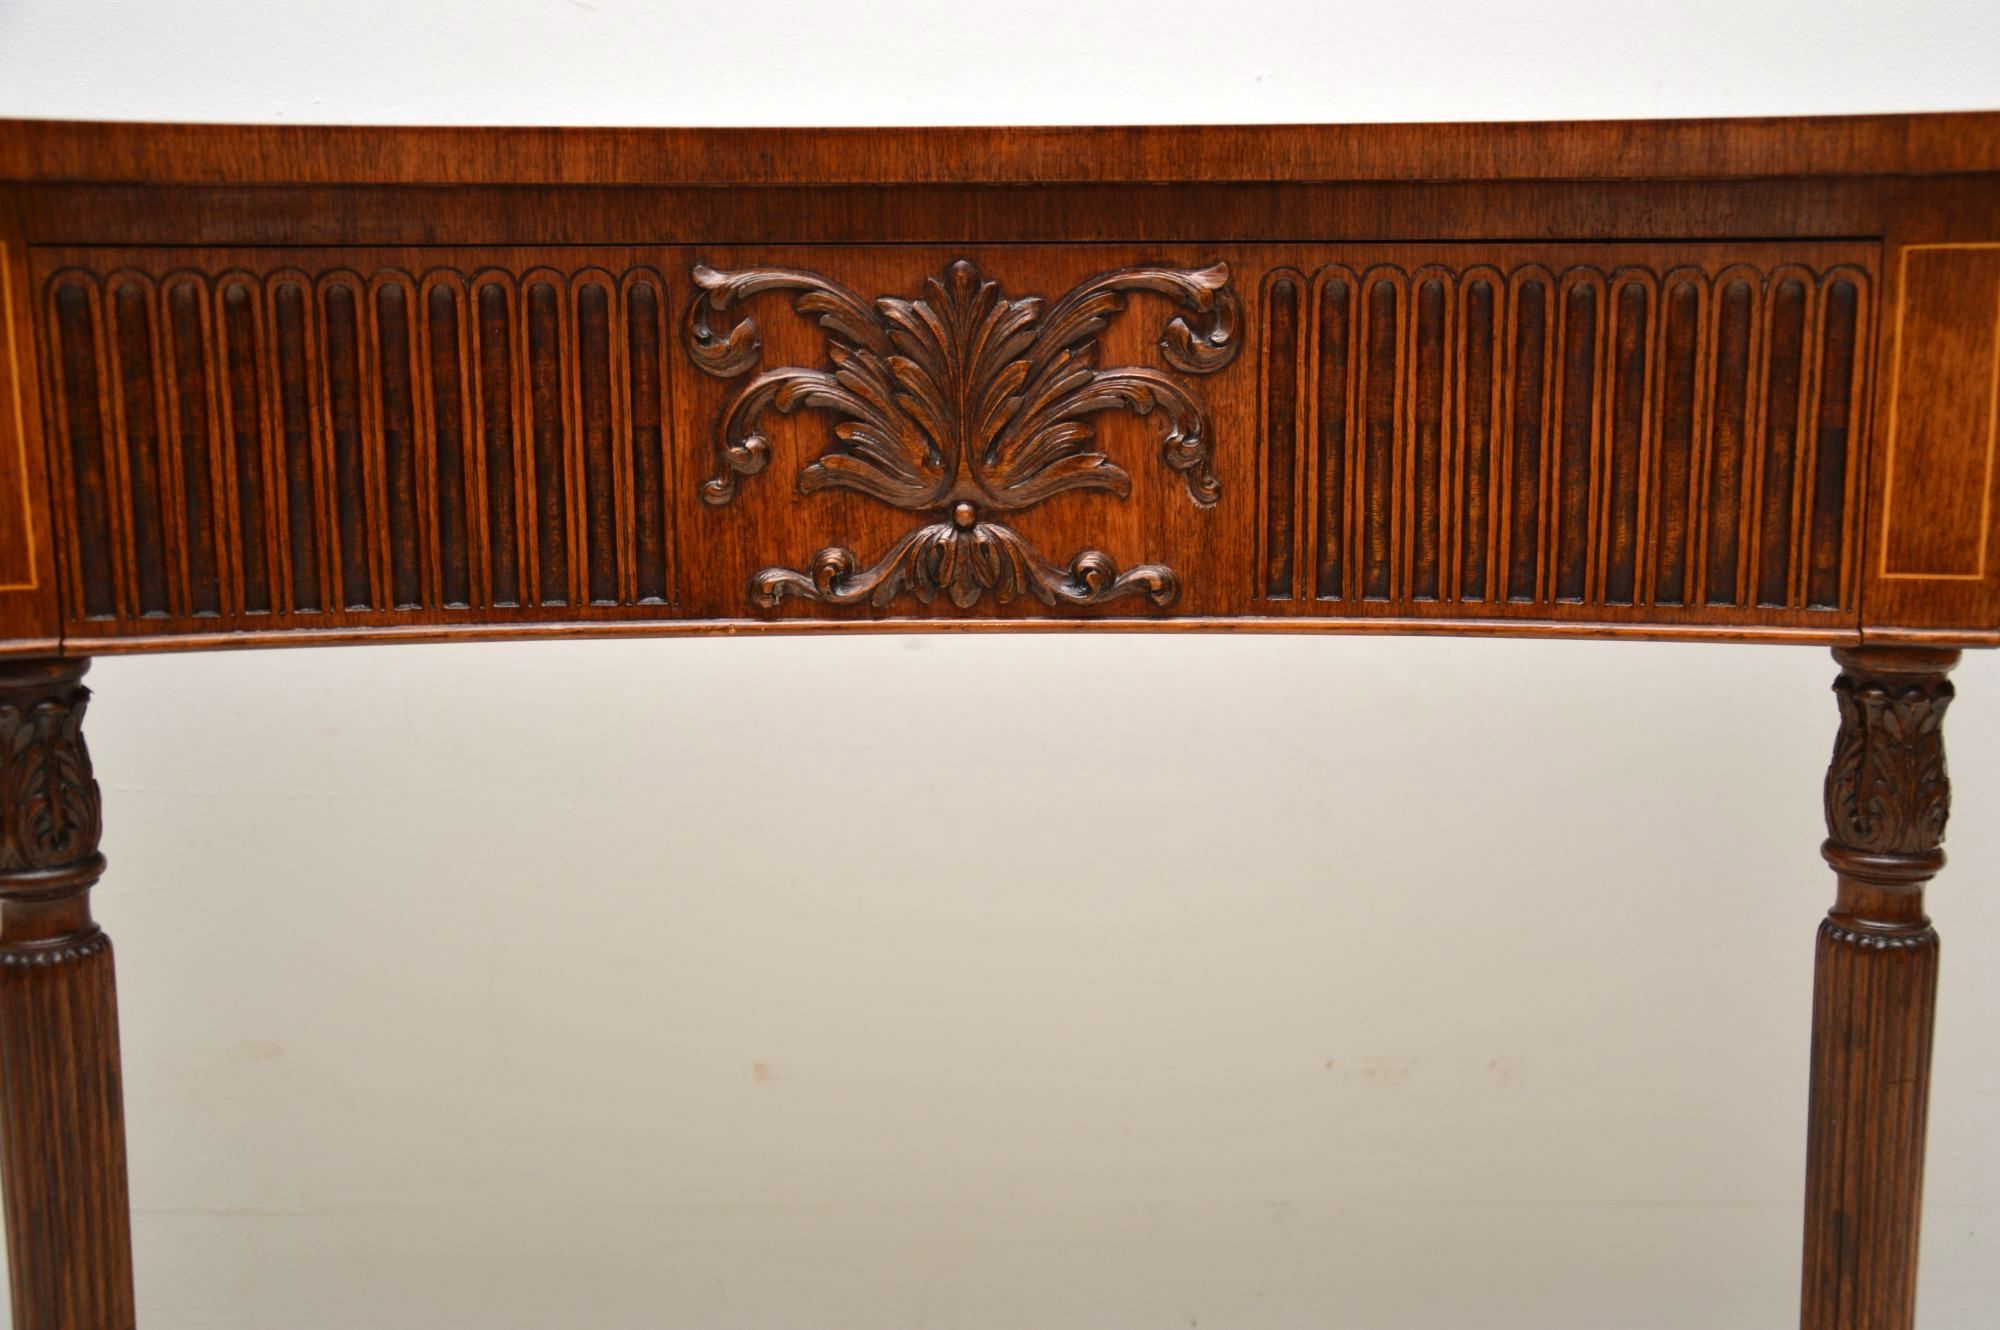 Antique Inlaid Mahogany & Kingwood Server Console Table (1930 To Regarding Orange Inlay Console Tables (View 6 of 20)